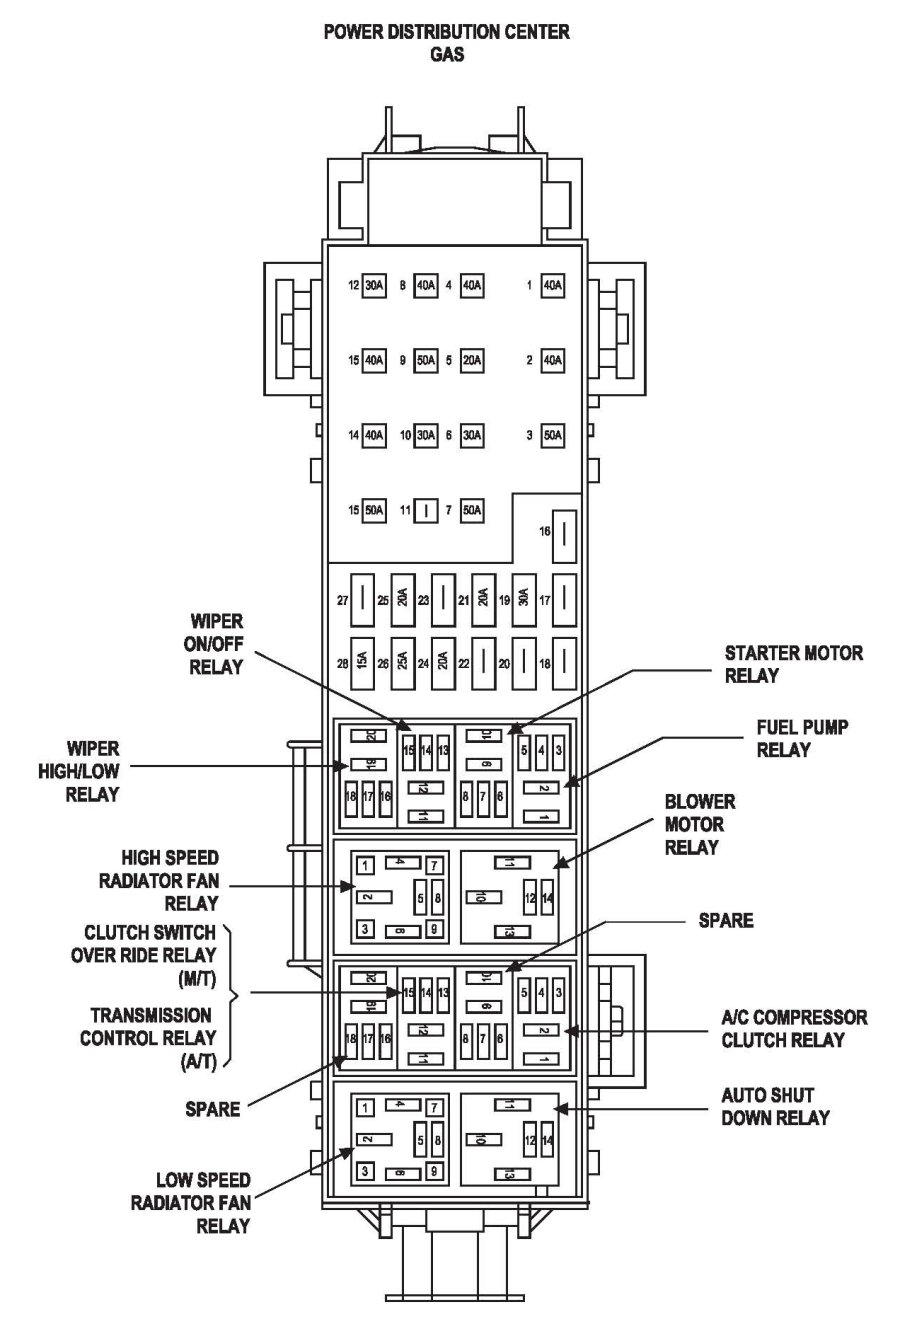 2004 Chevy Trailblazer Fuse Panel Diagram Wiring Diagram